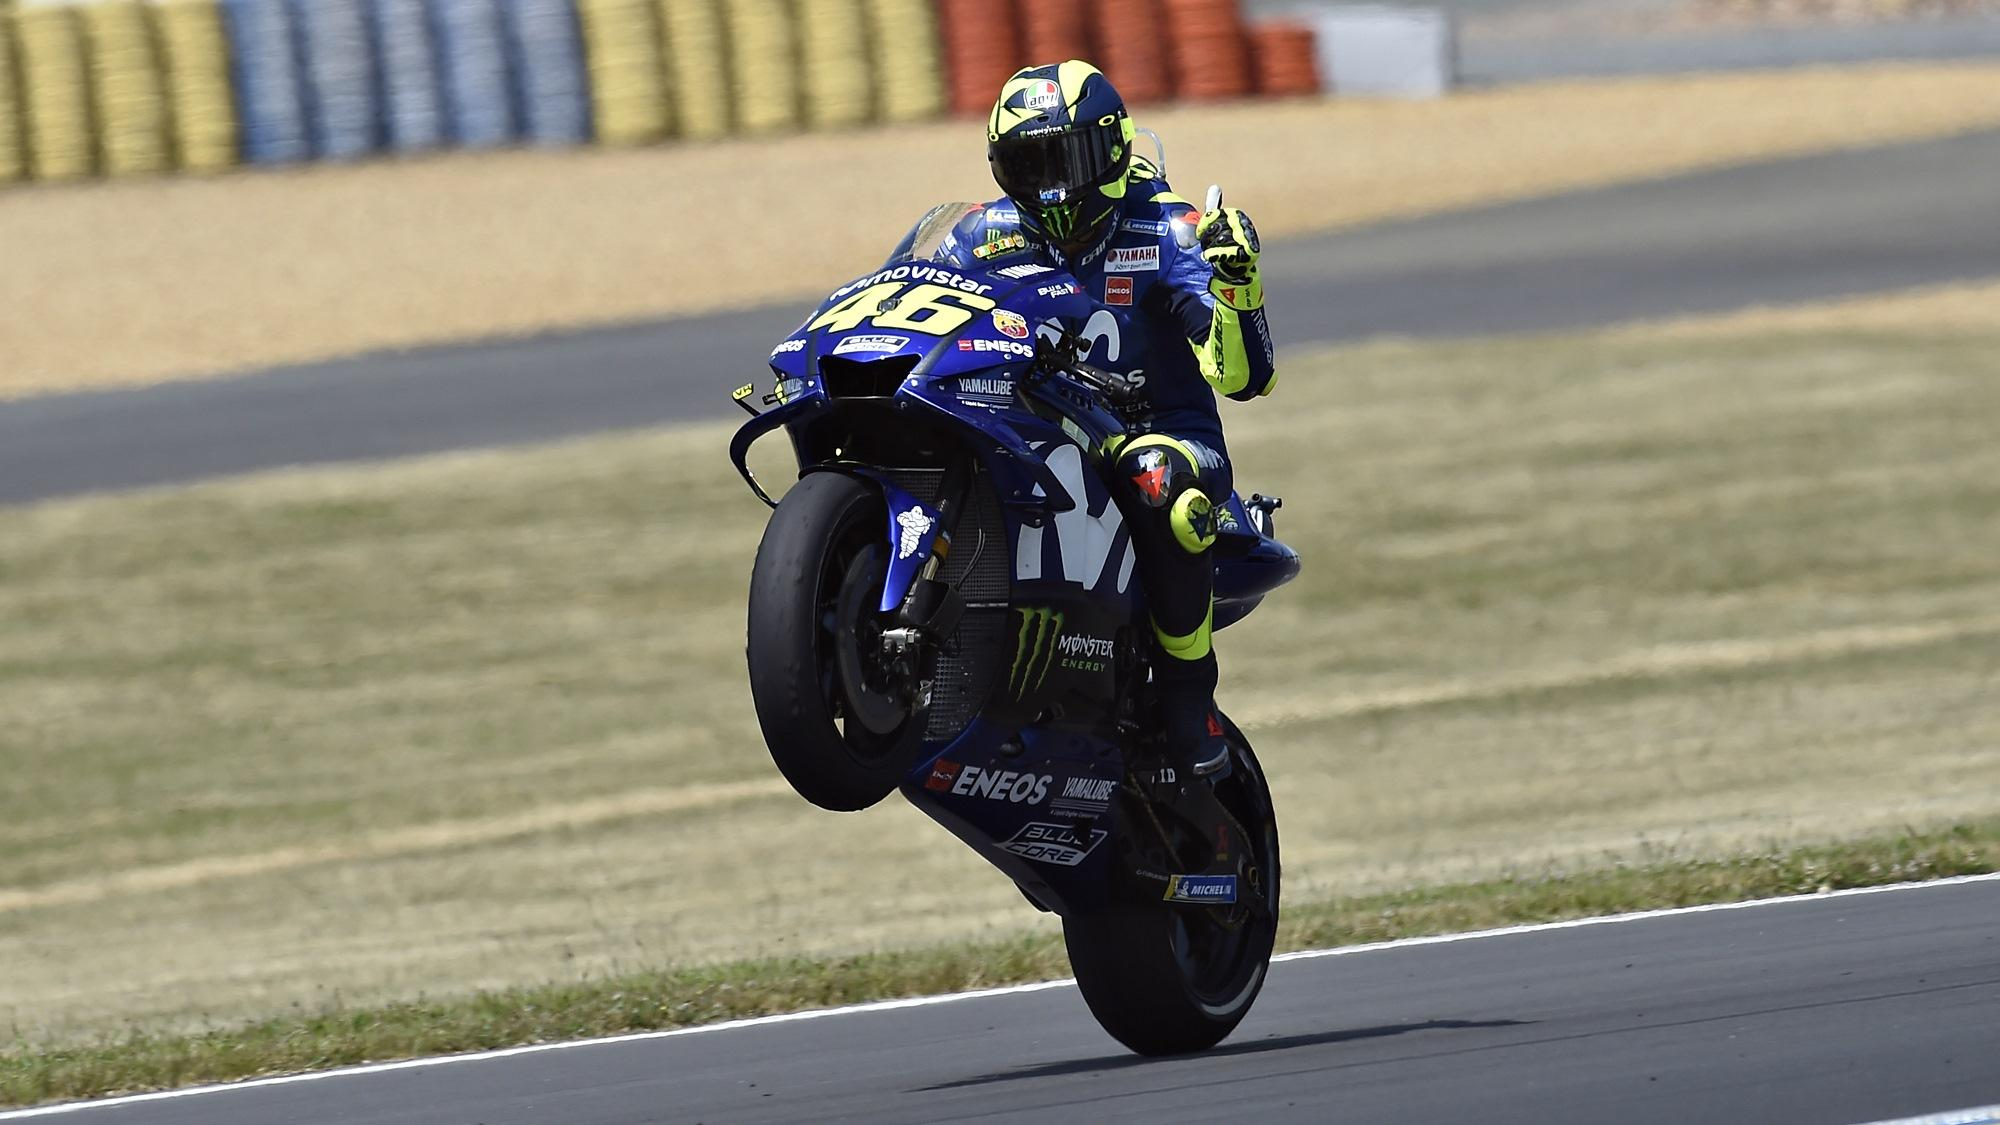 Valentino Rossi HD wallpapers MotoGP Le Mans